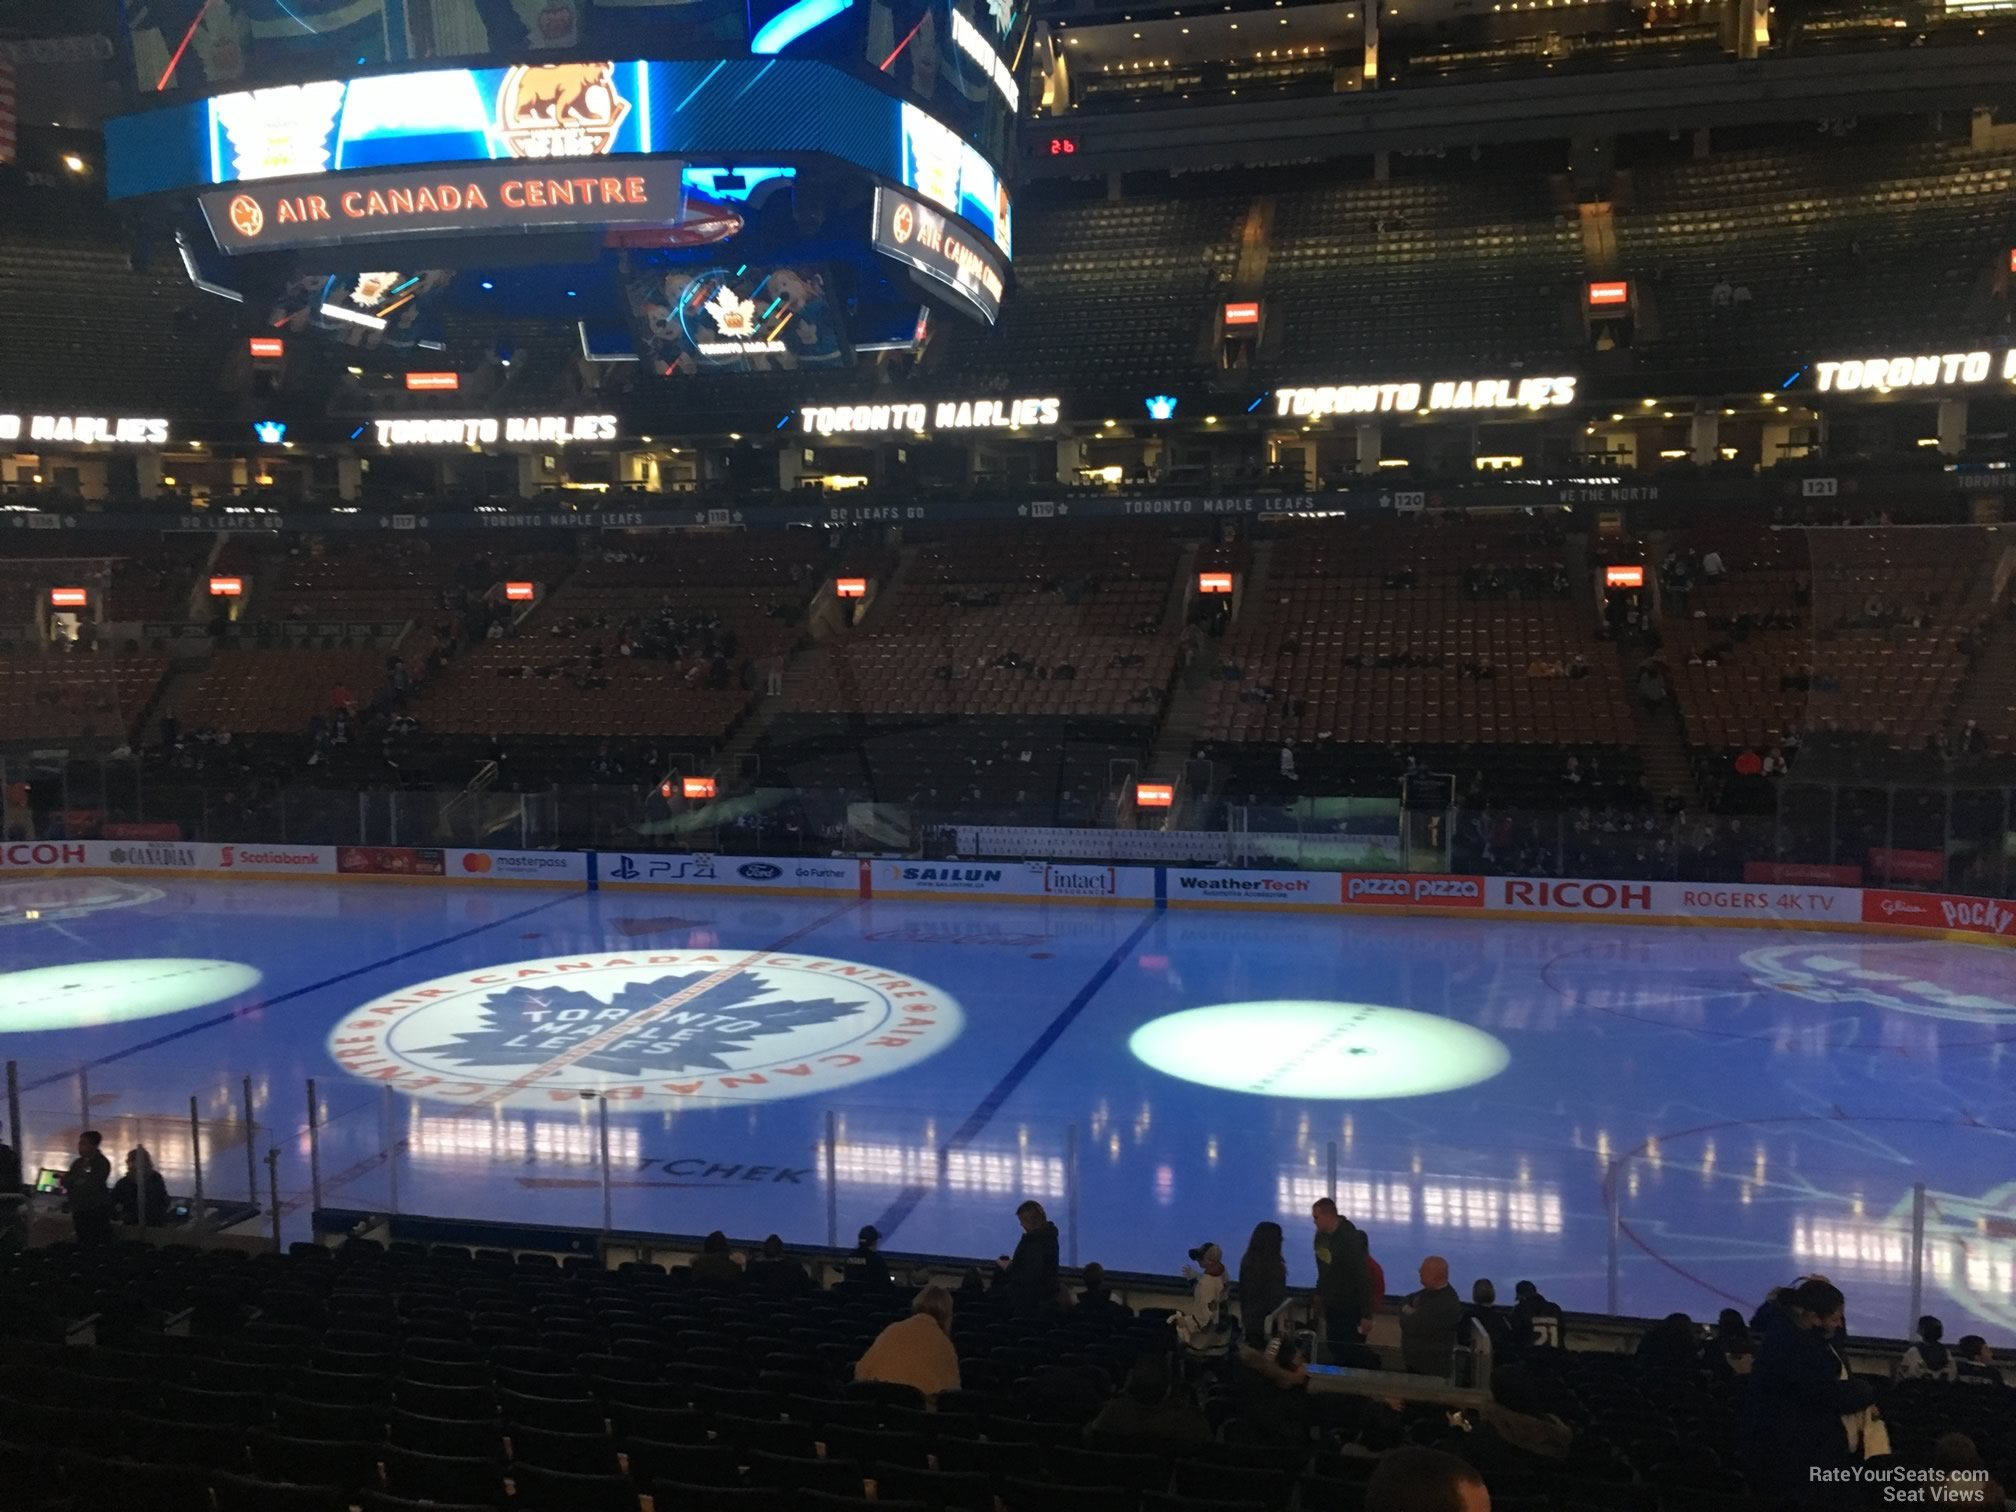 Toronto Maple Leafs Seat View for Scotiabank Arena Section 107, Row 20